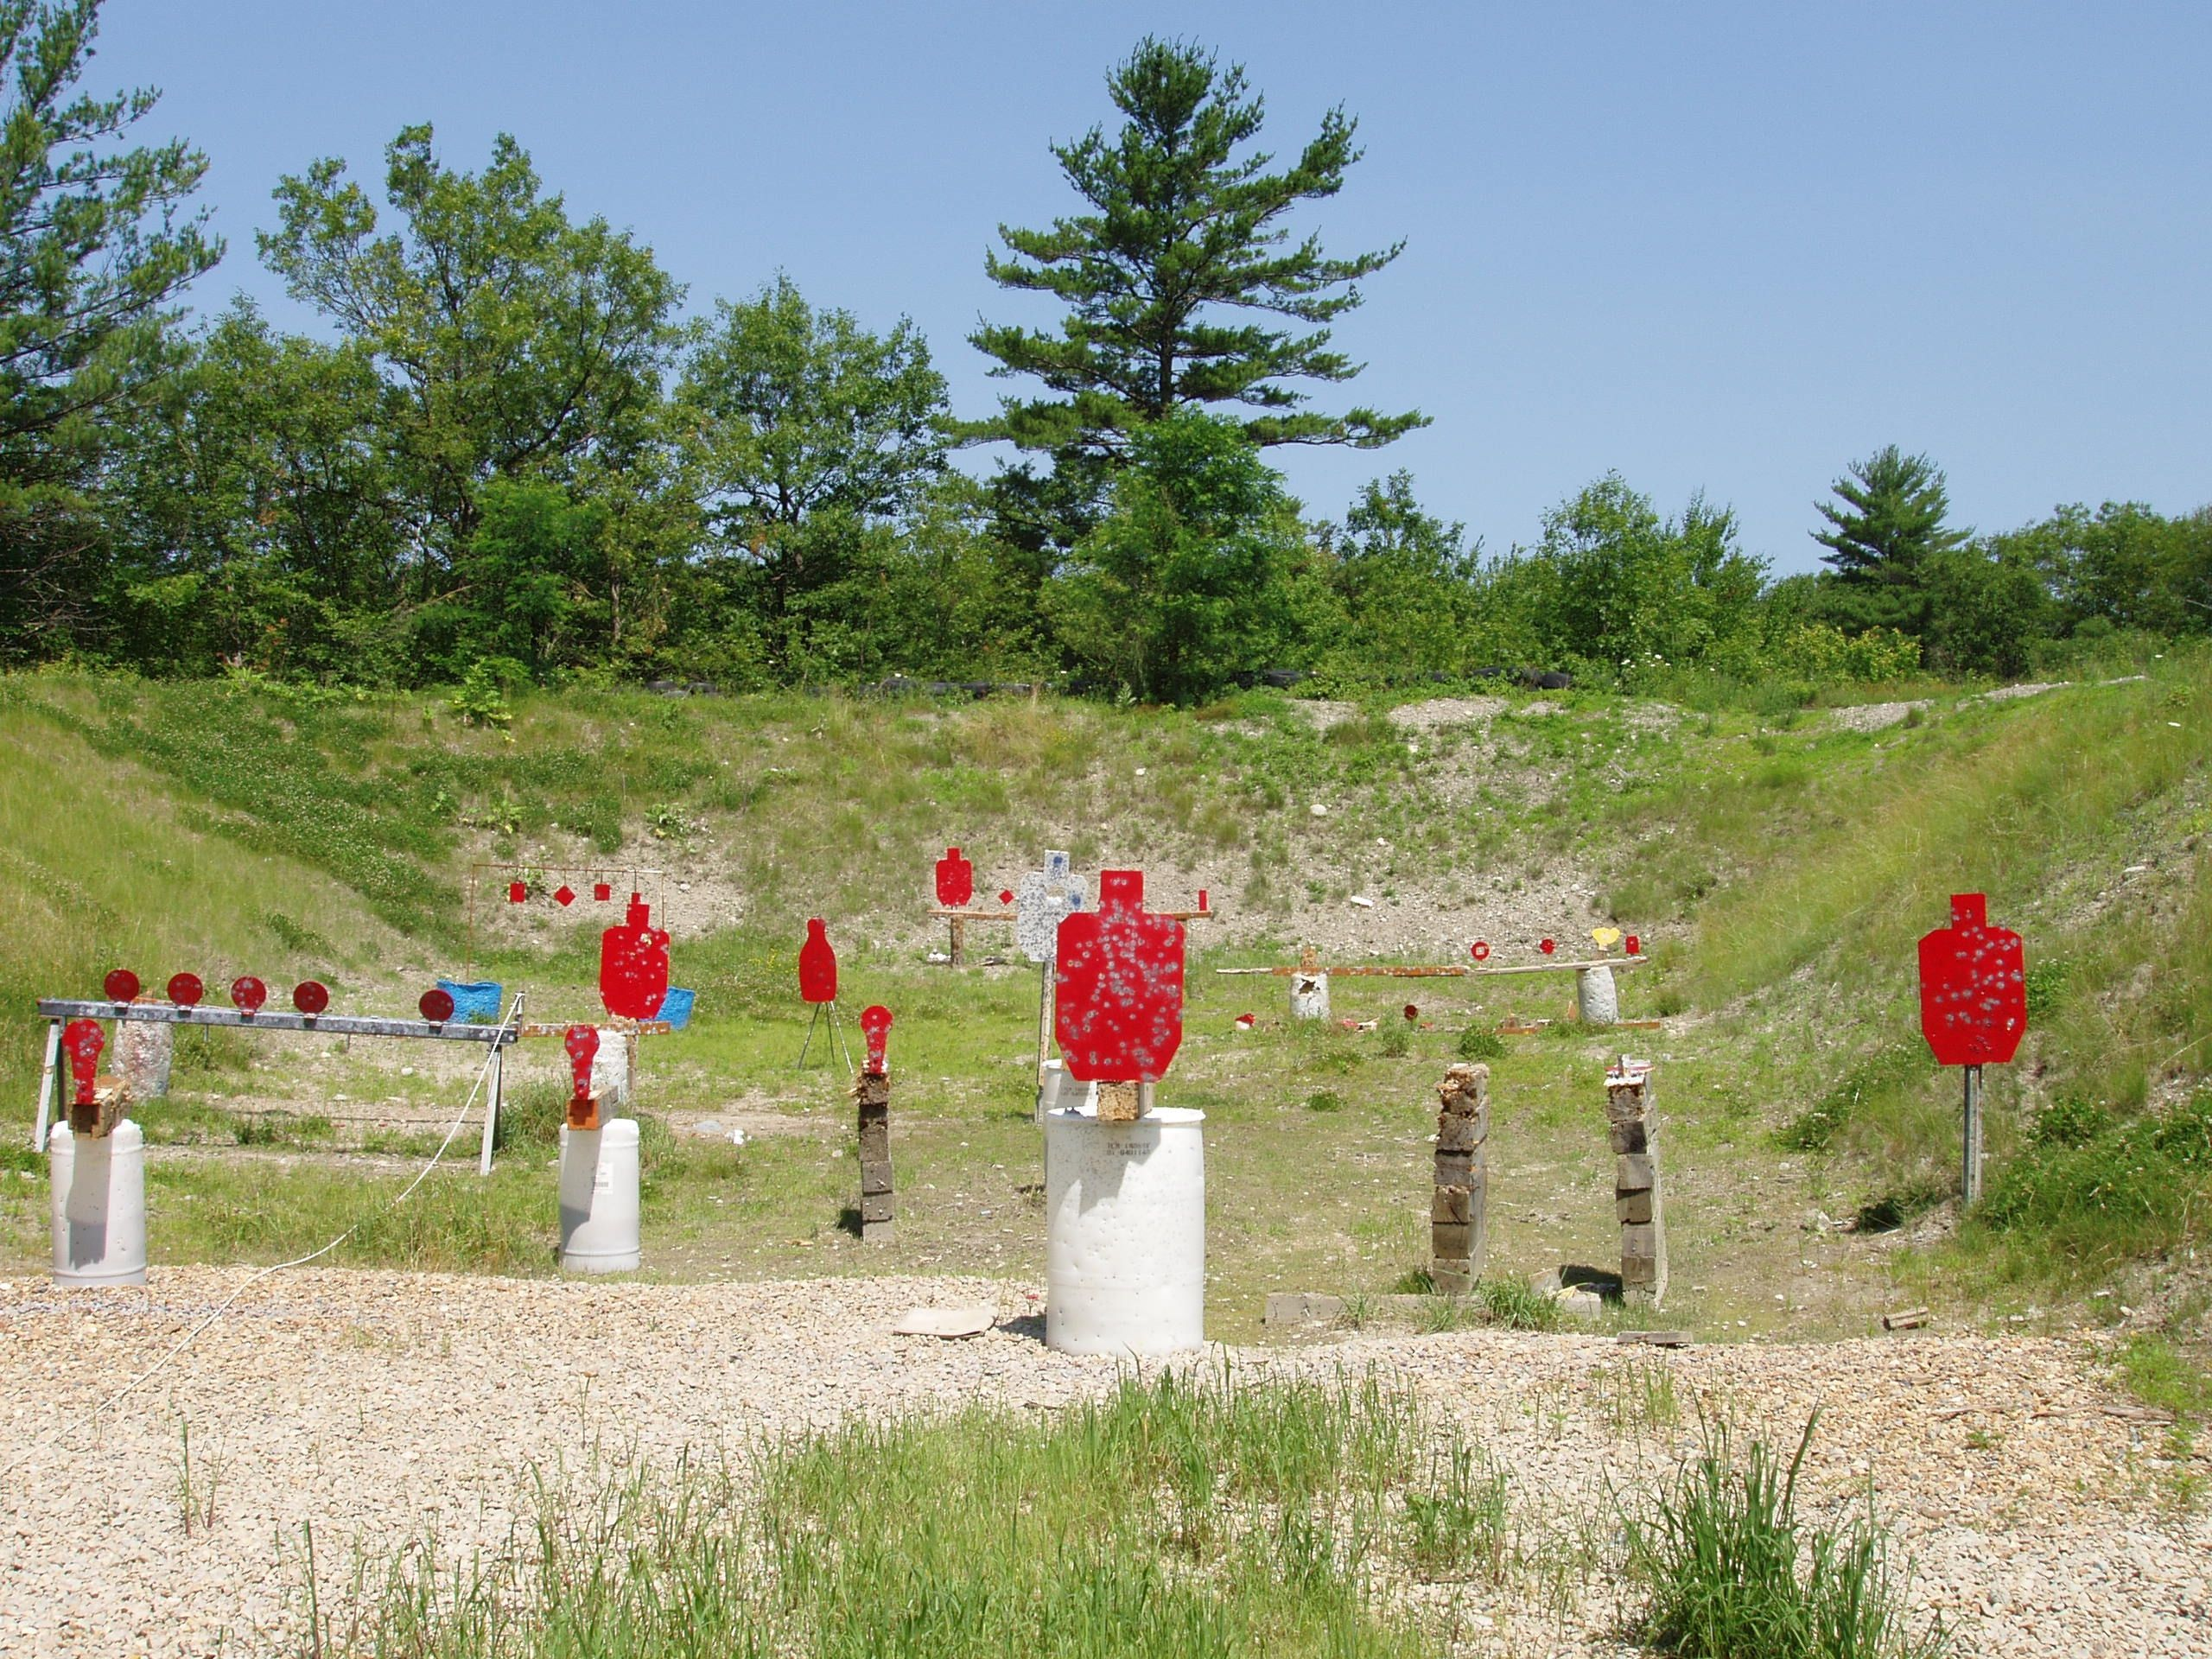 Build An Awesome Shooting Range In Your Backyard With